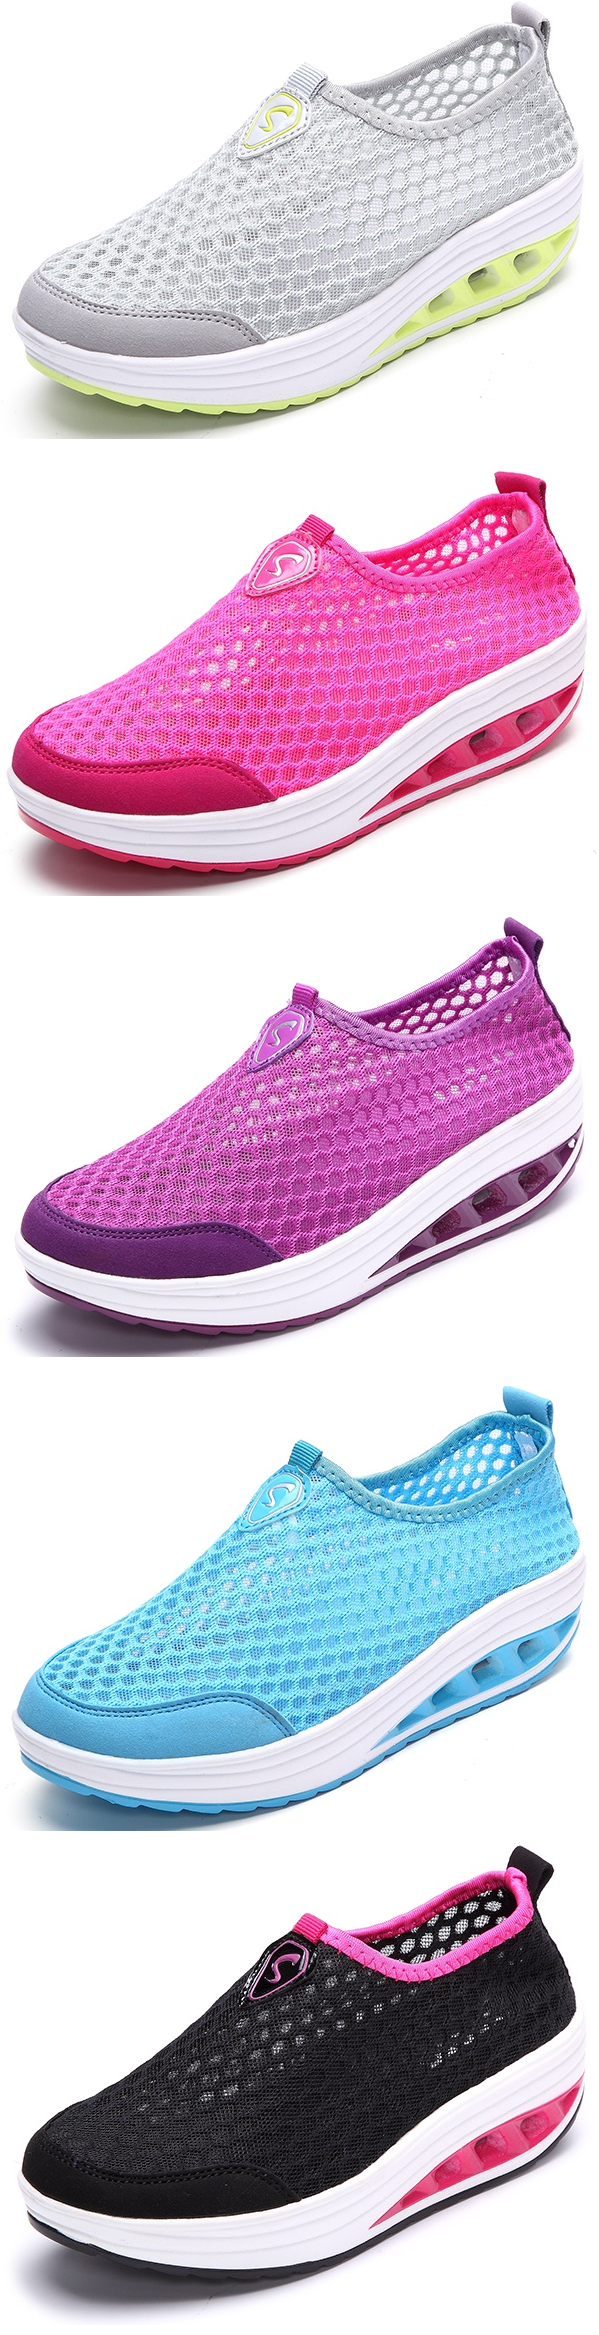 Mesh Breathable Sport Pure Color Slip On Athletic Platform Casual Sport Breathable   fbafcd